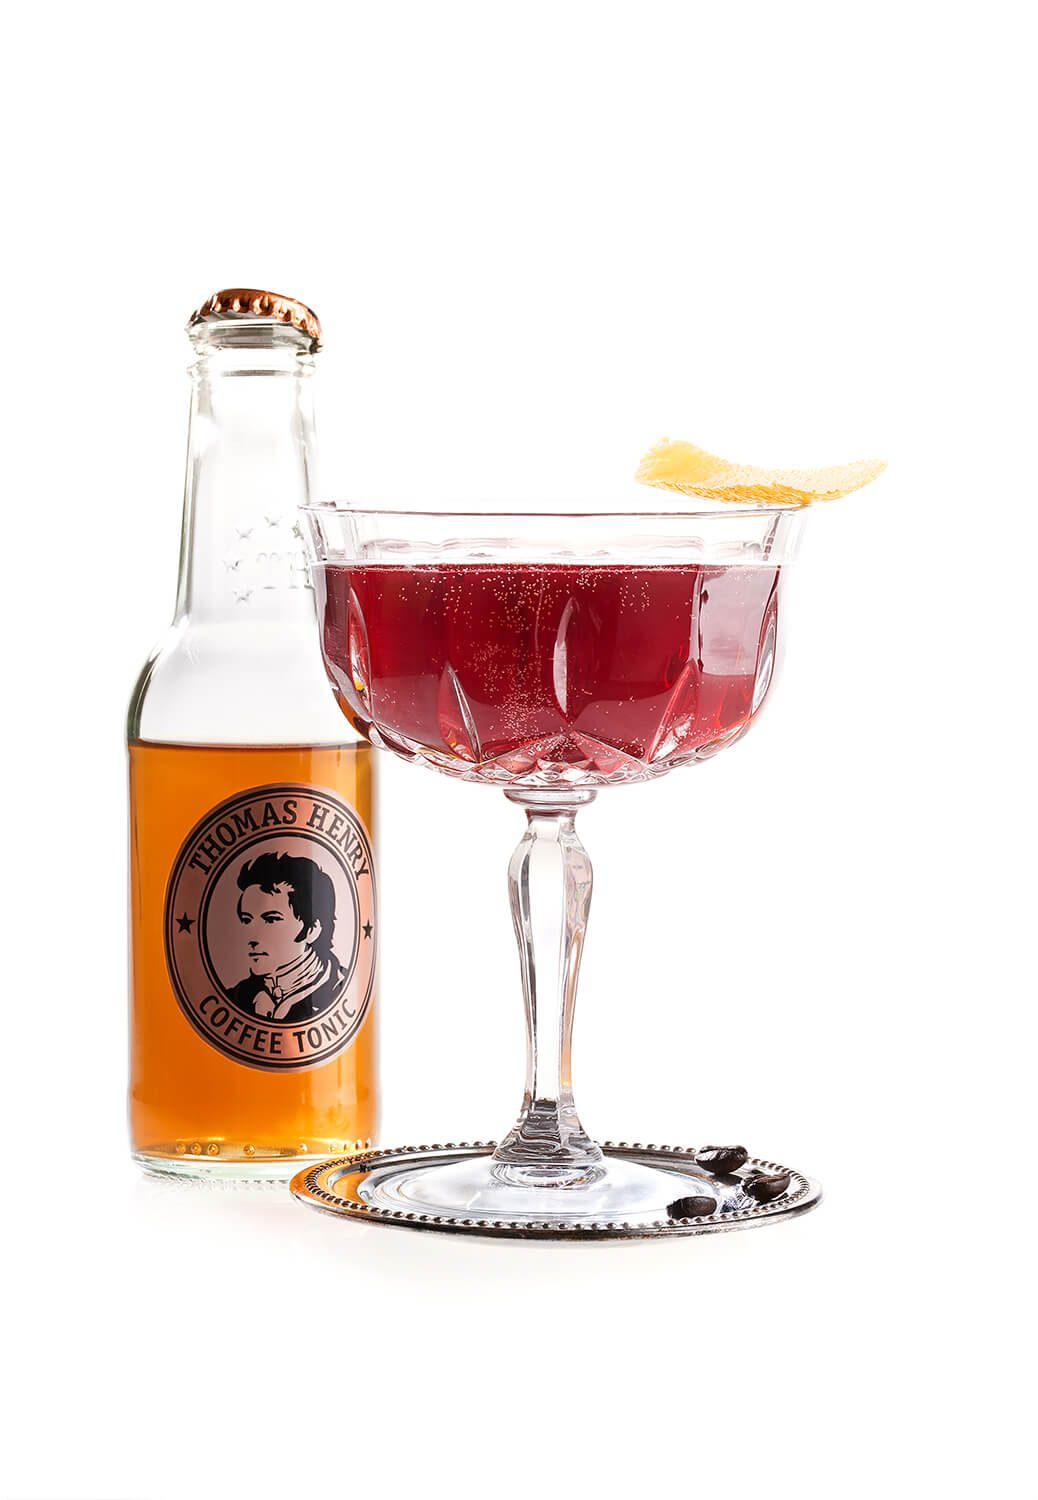 Thomas Henry Coffee Tonic Cold Brew Martini